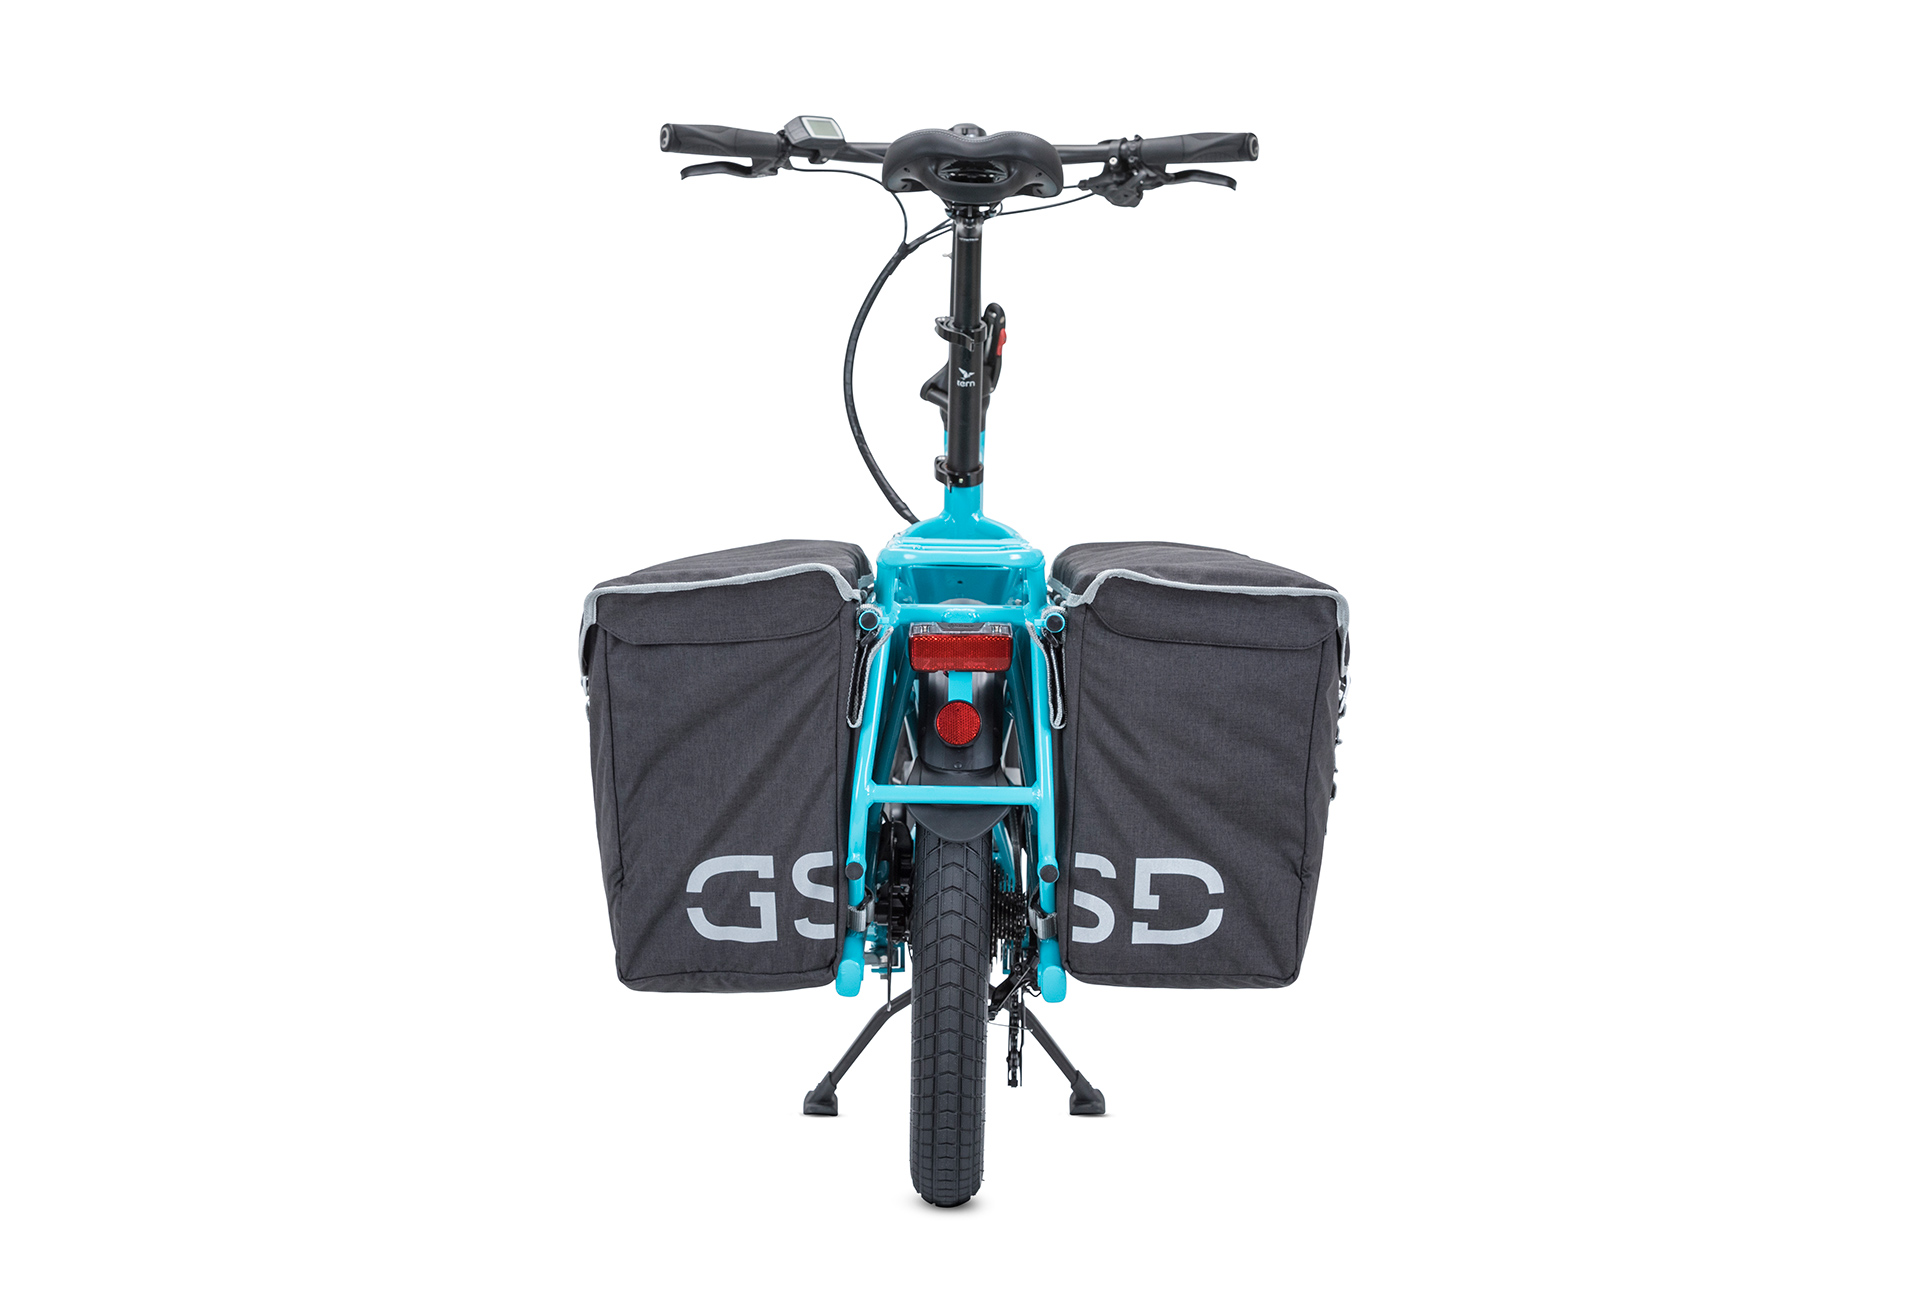 The Tern Gsd A Compact Utility Ebike For Families Tern Bicycles